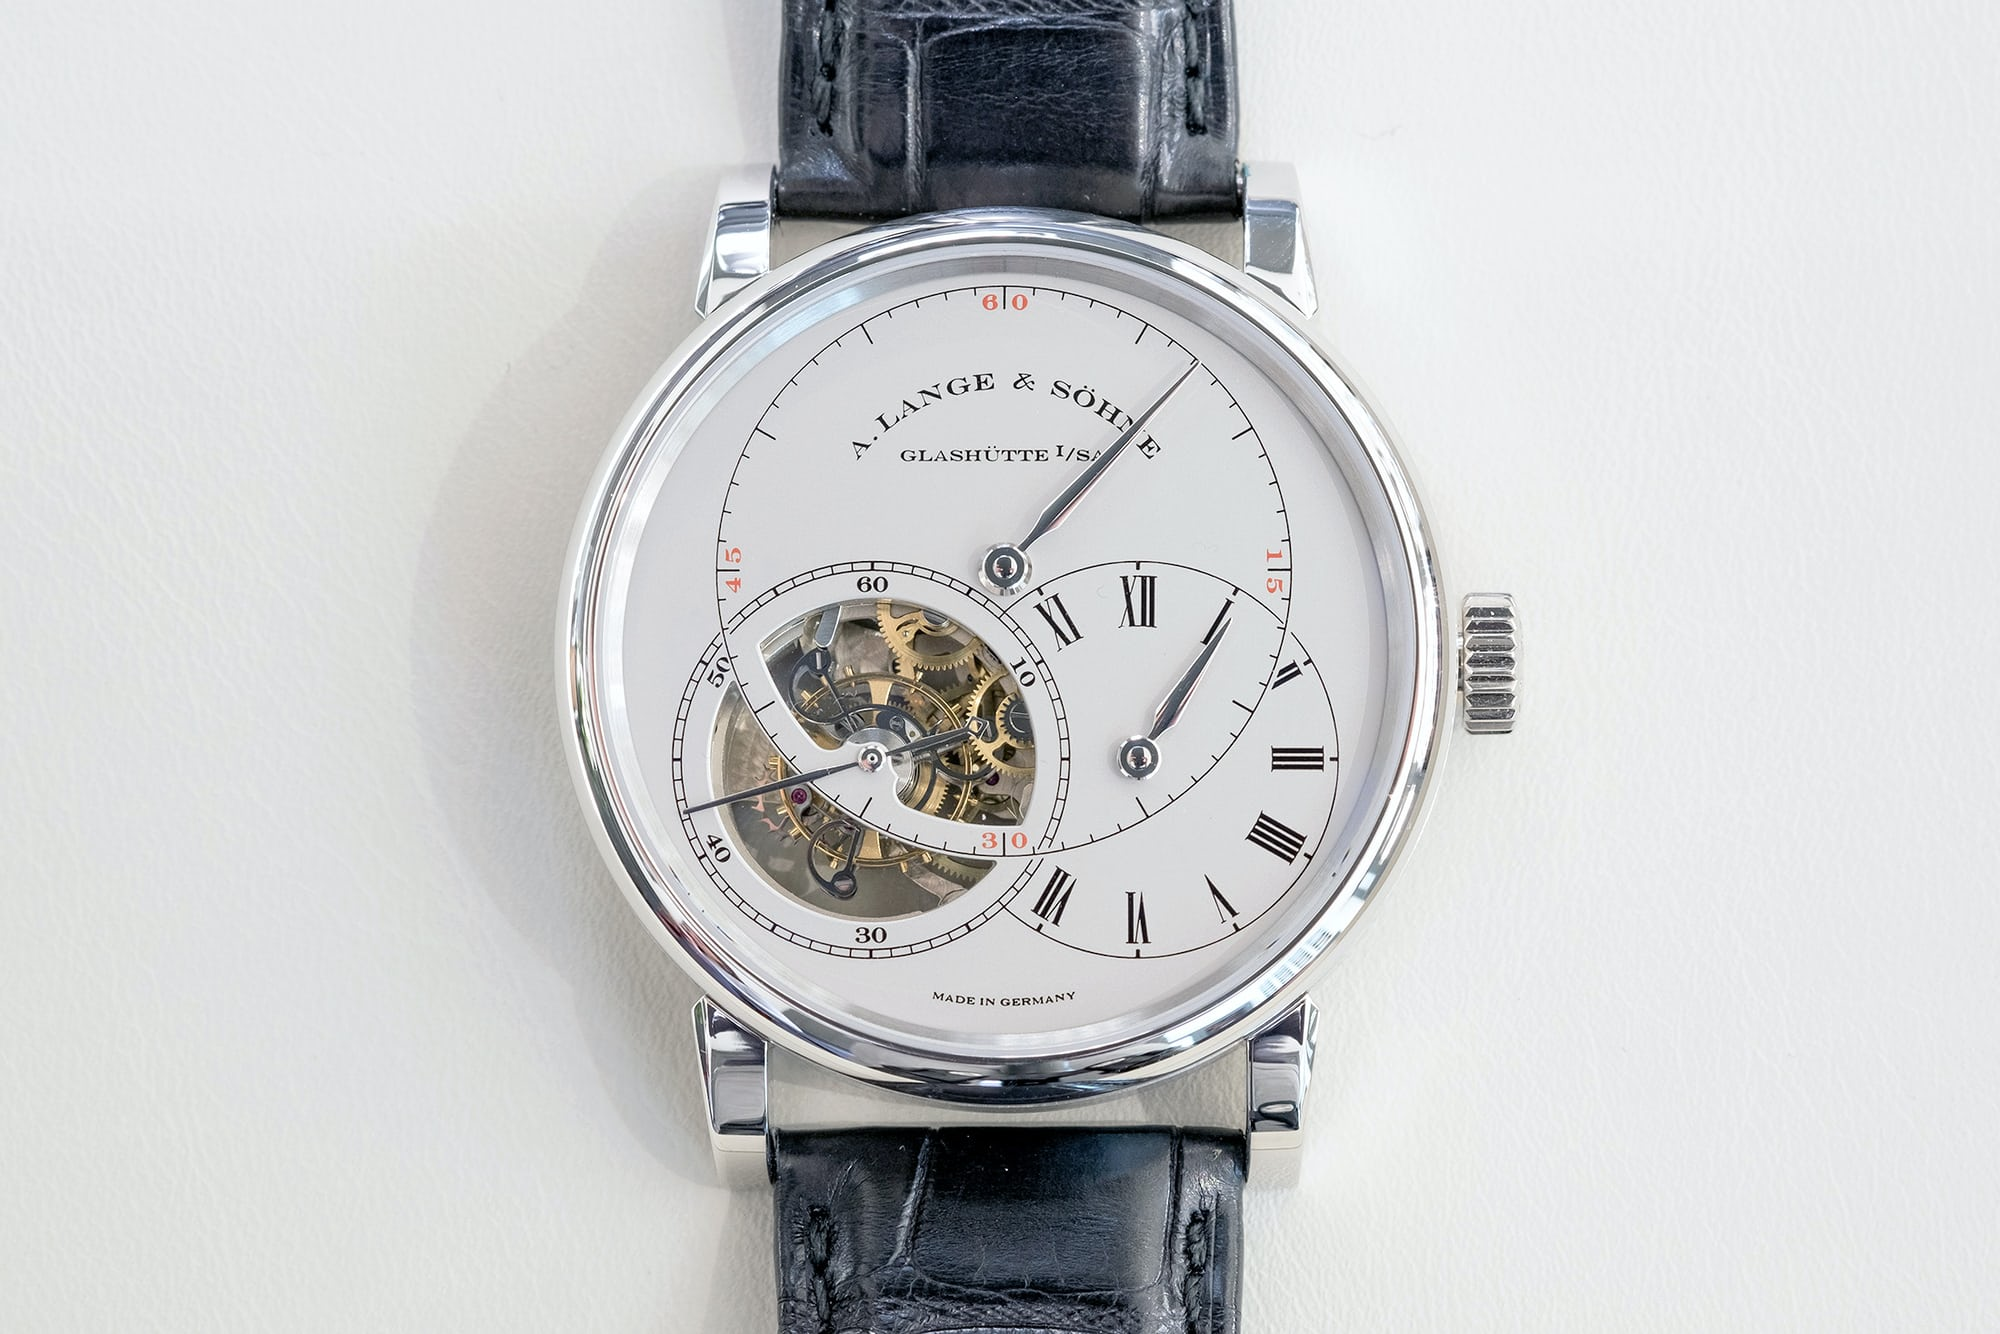 Just Because: All Five A. Lange & Söhne 'Pour le Mérite' Watches In The Same Place, At The Same Time Just Because: All Five A. Lange & Söhne 'Pour le Mérite' Watches In The Same Place, At The Same Time plm 15